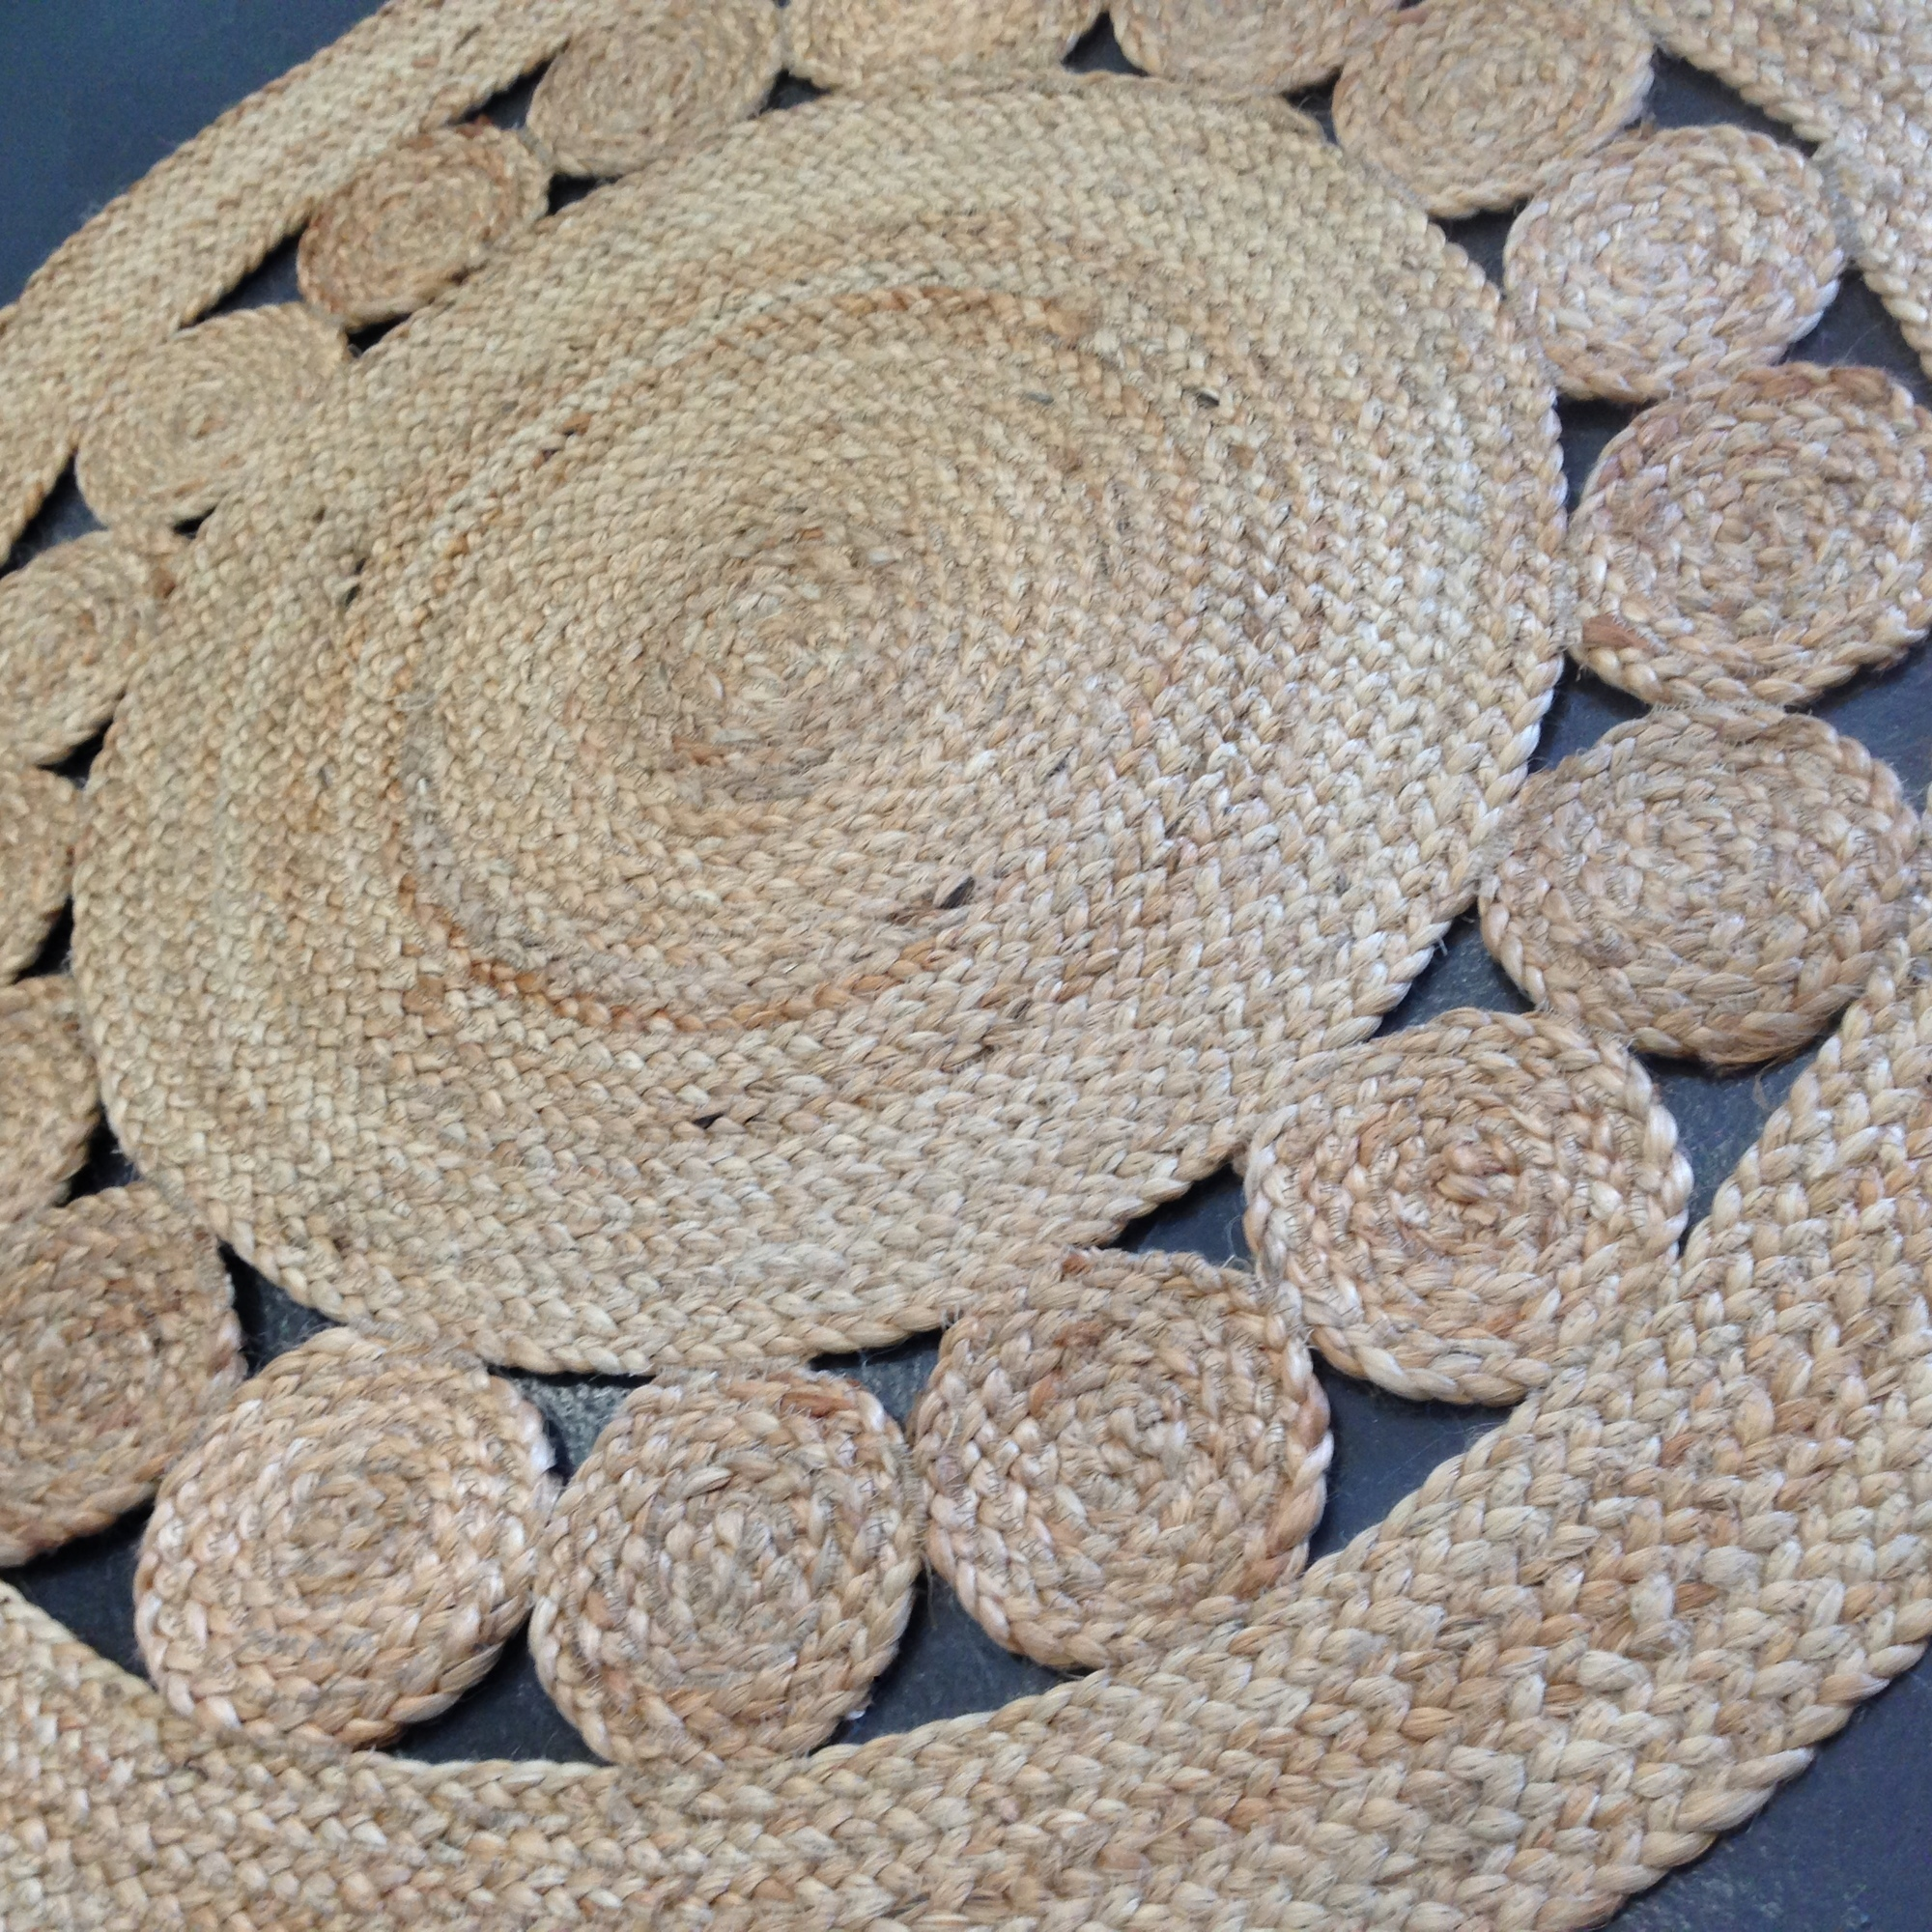 Unique And Artistic Round Shaped Textured Jute Rug Idea With Pattern Chevron For